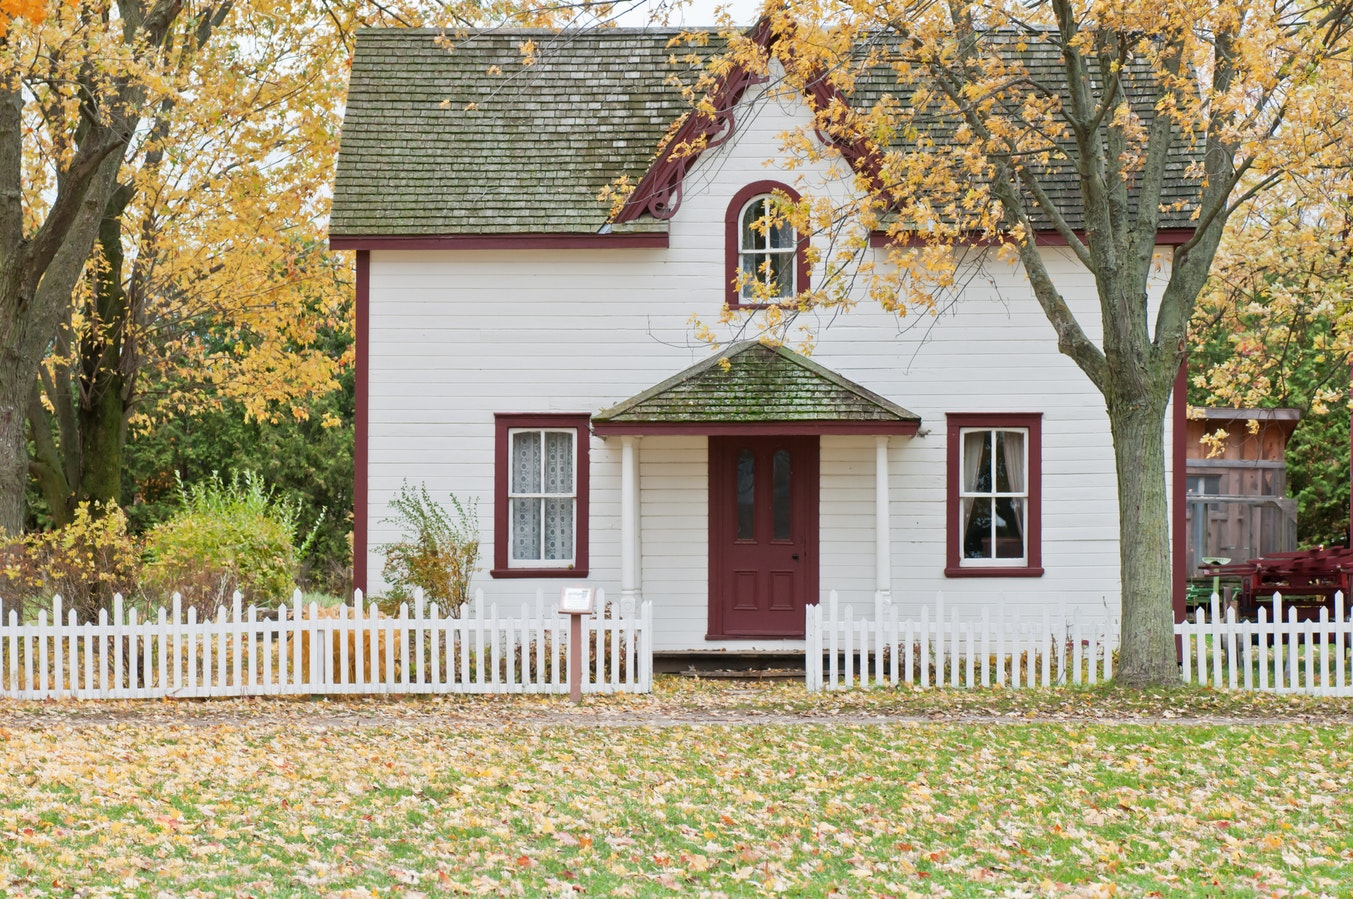 A home. An important thing to know about medicare is that it is helping to decrease senior poverty.